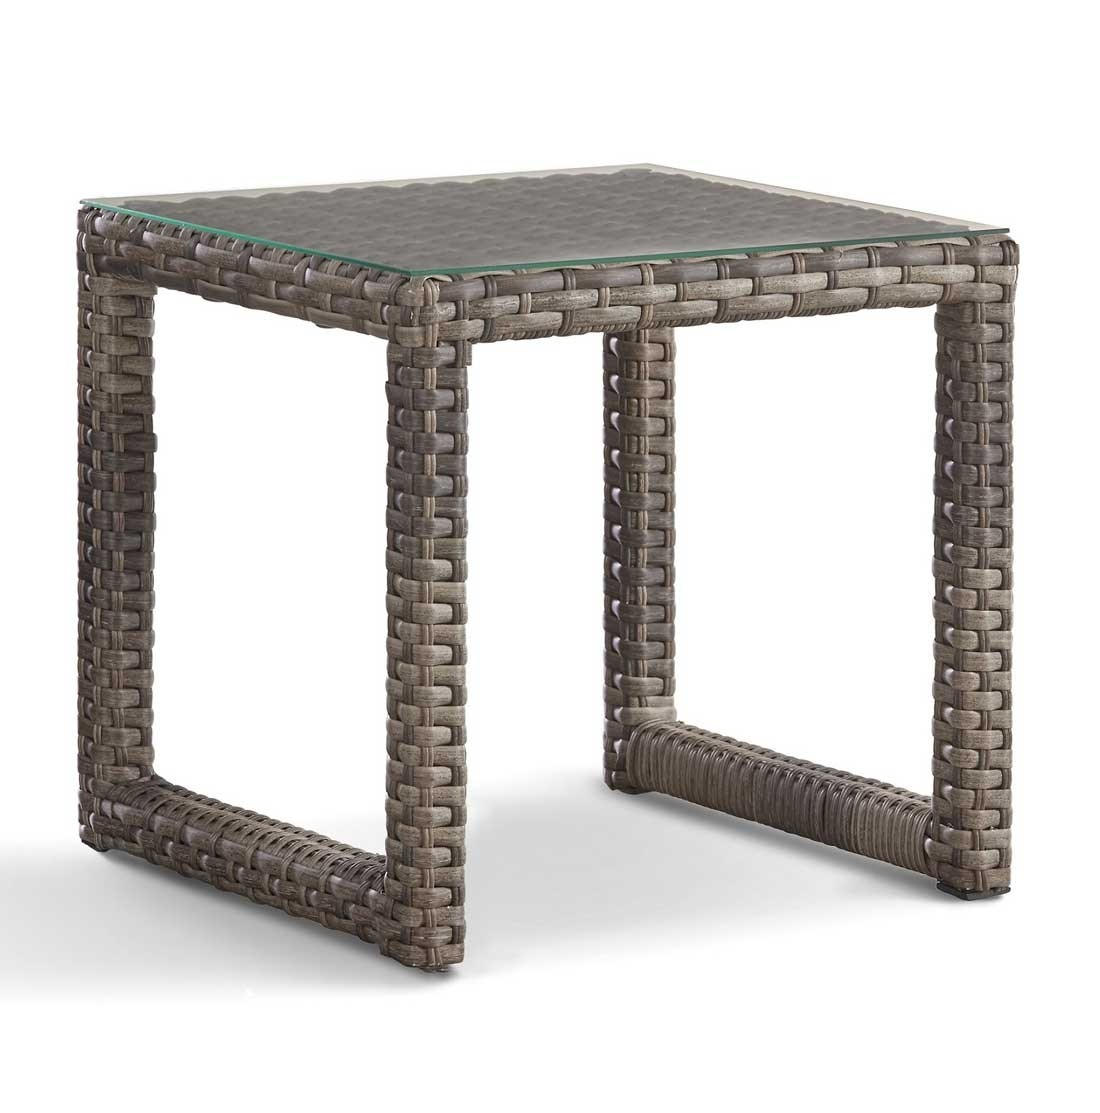 biscayne bay all weather resin wicker end table ssbsb tables with glass top sandstone finish sauder furniture retailers universal chelsea round nightstand coffee brass base ashley